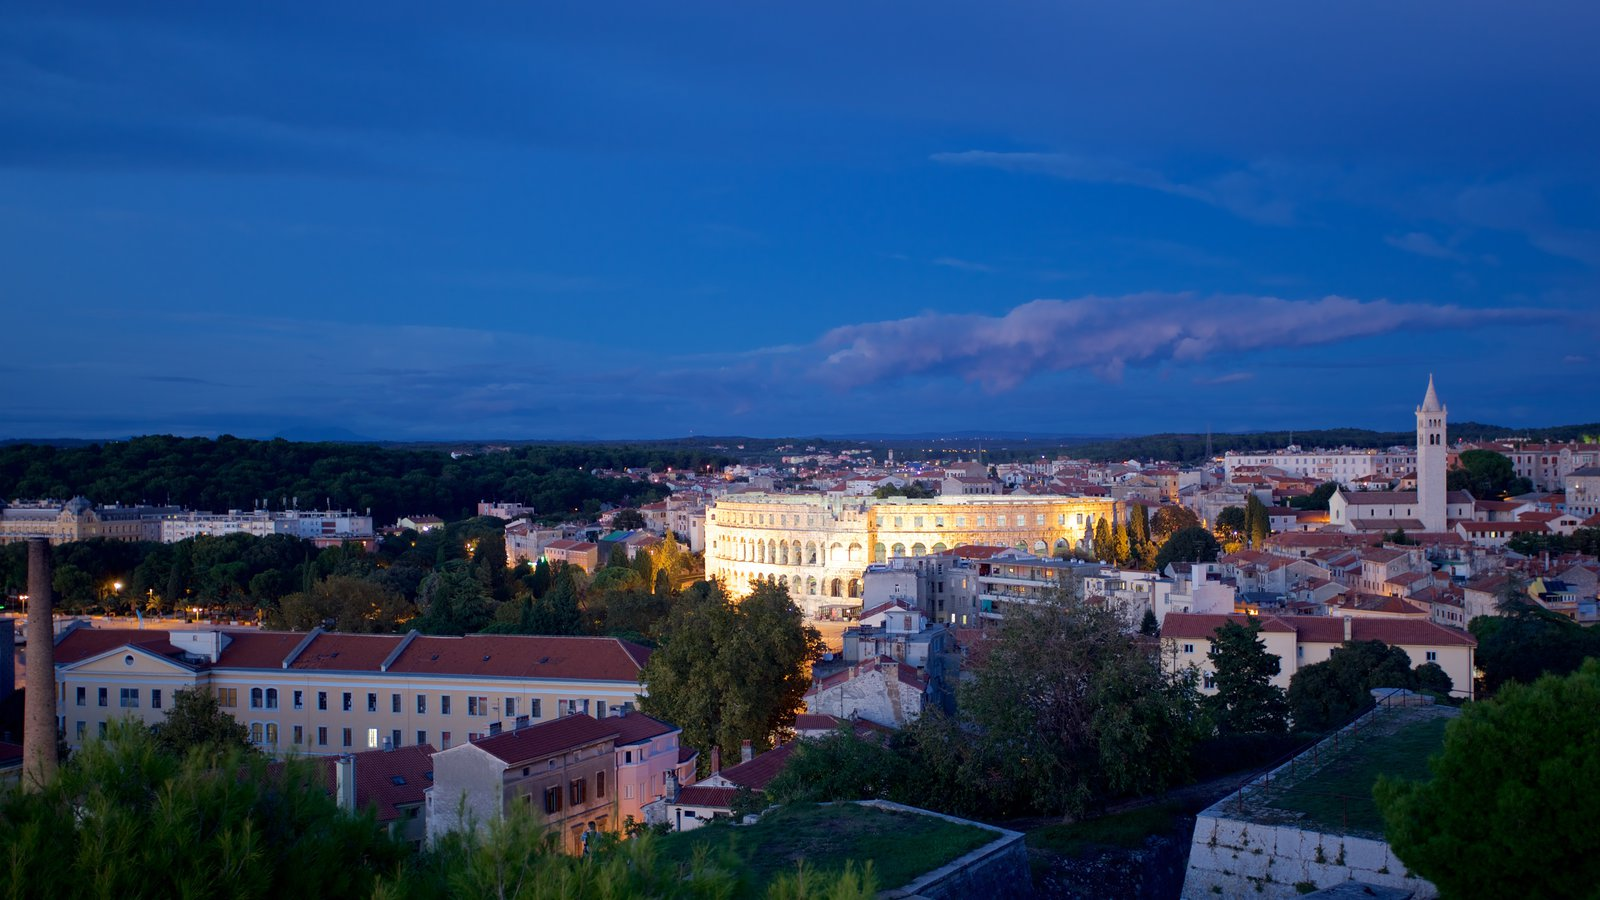 Pula featuring a city and night scenes